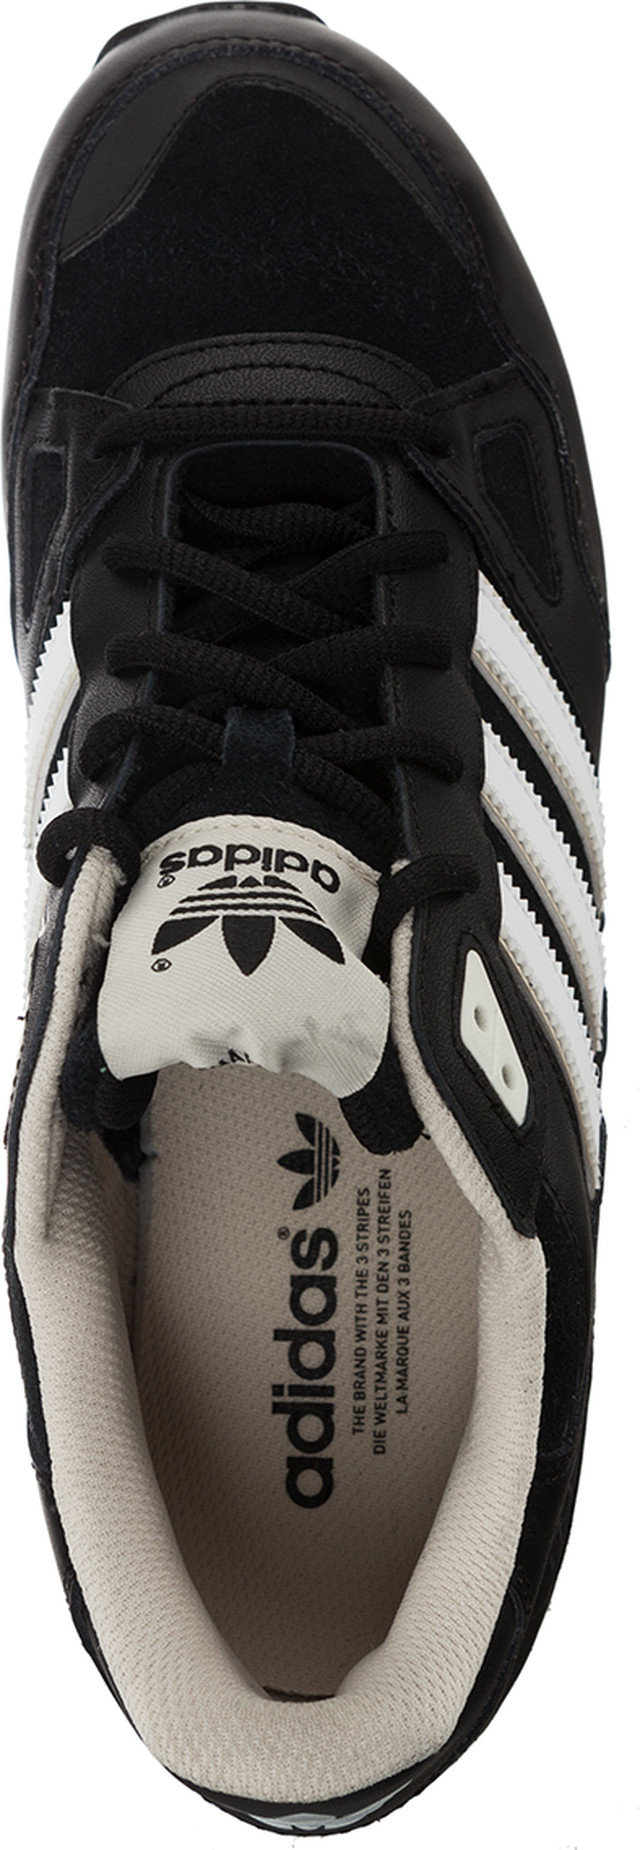 Buty adidas  <br/><small>Zx 750 852 </small>  B24852